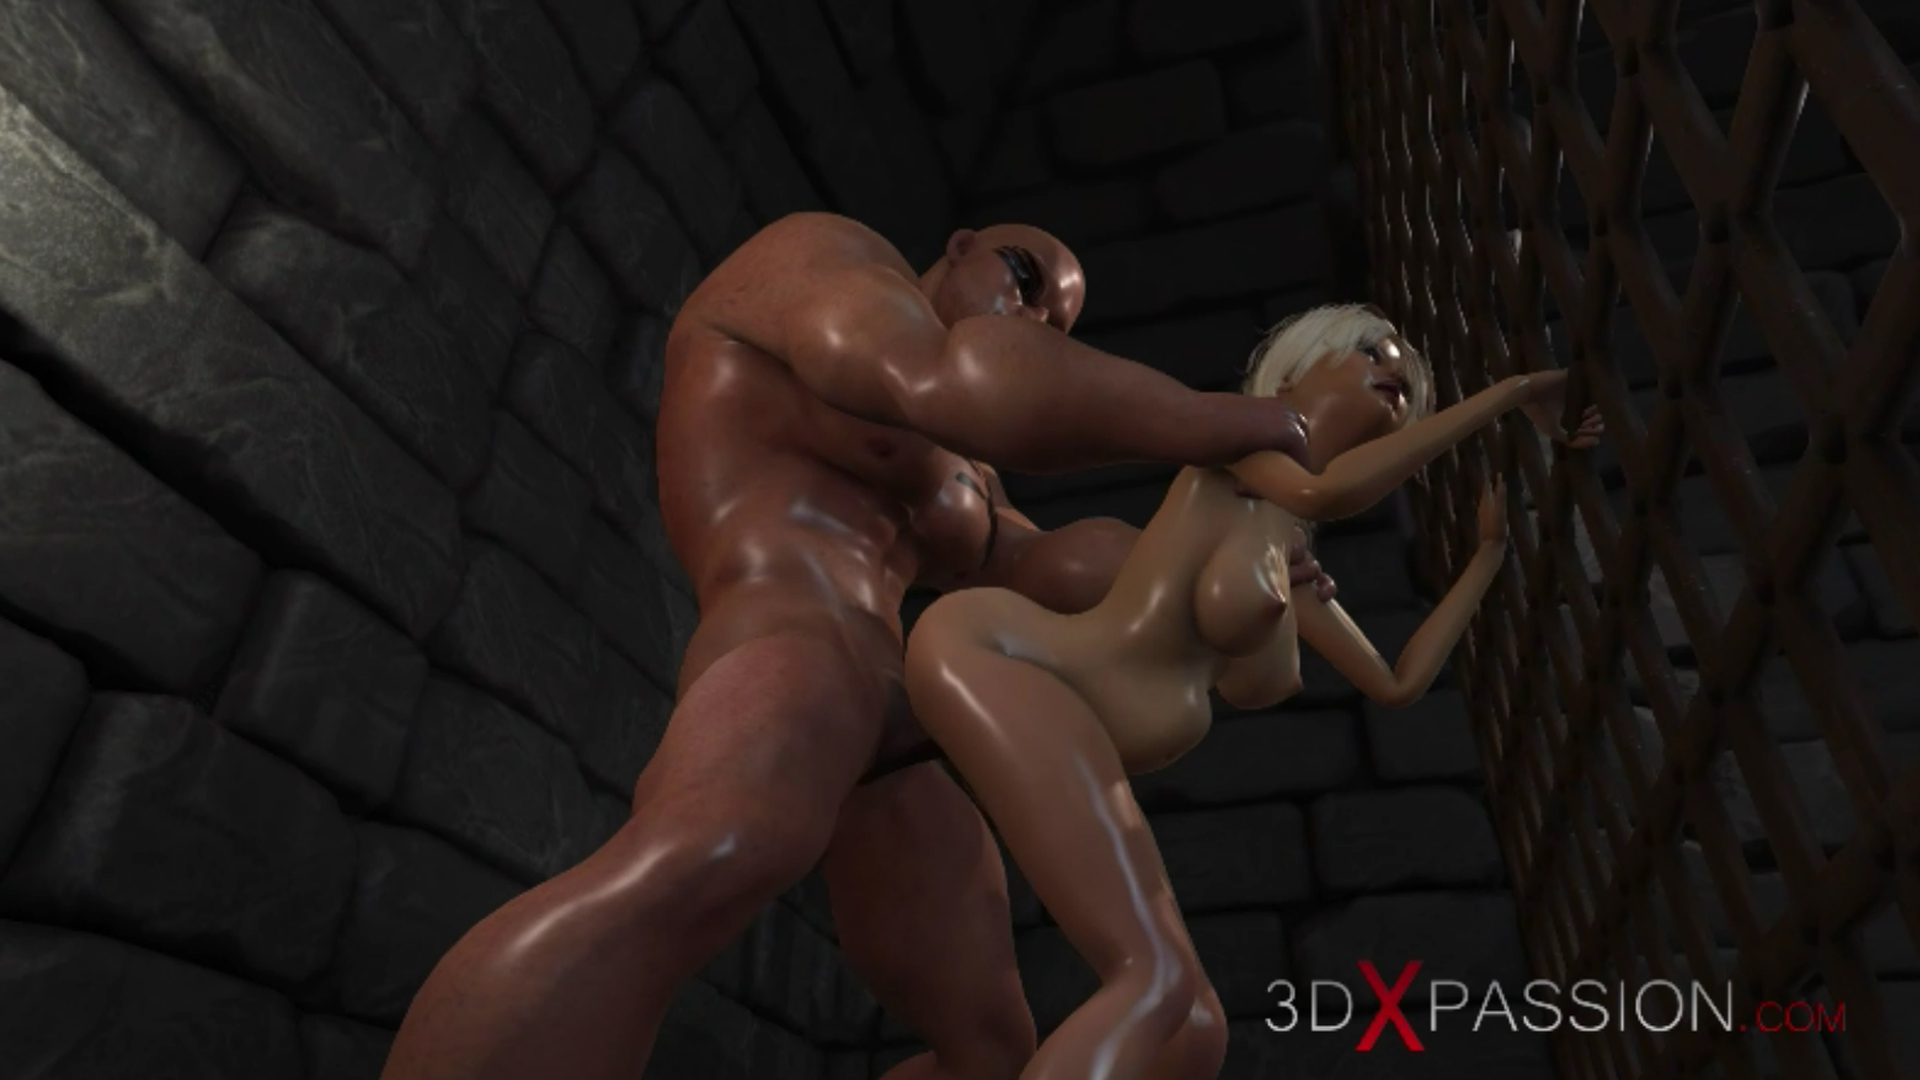 Young countess virgin doggystyle big cock in dark prison